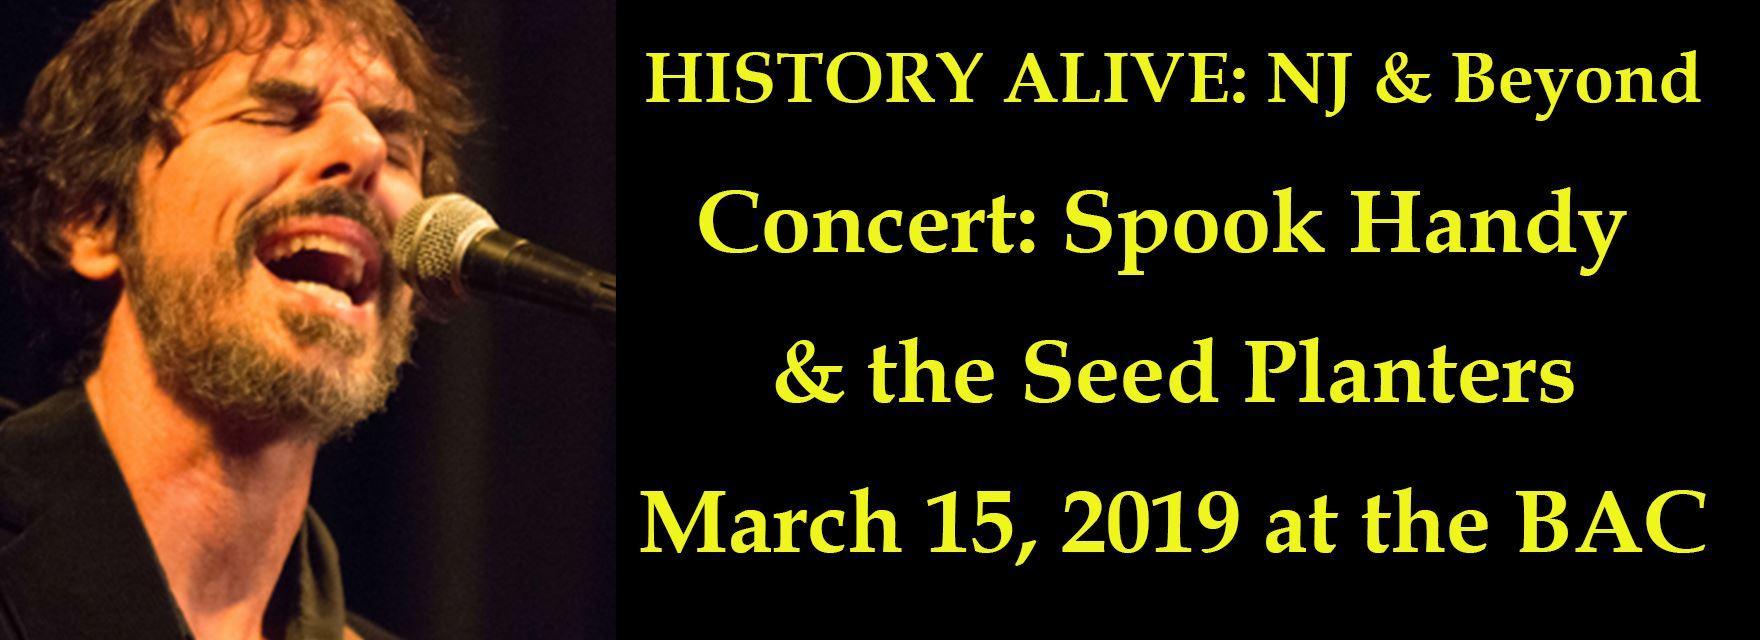 Concert: Spook Handy & the Seed Planters 3/15/2019